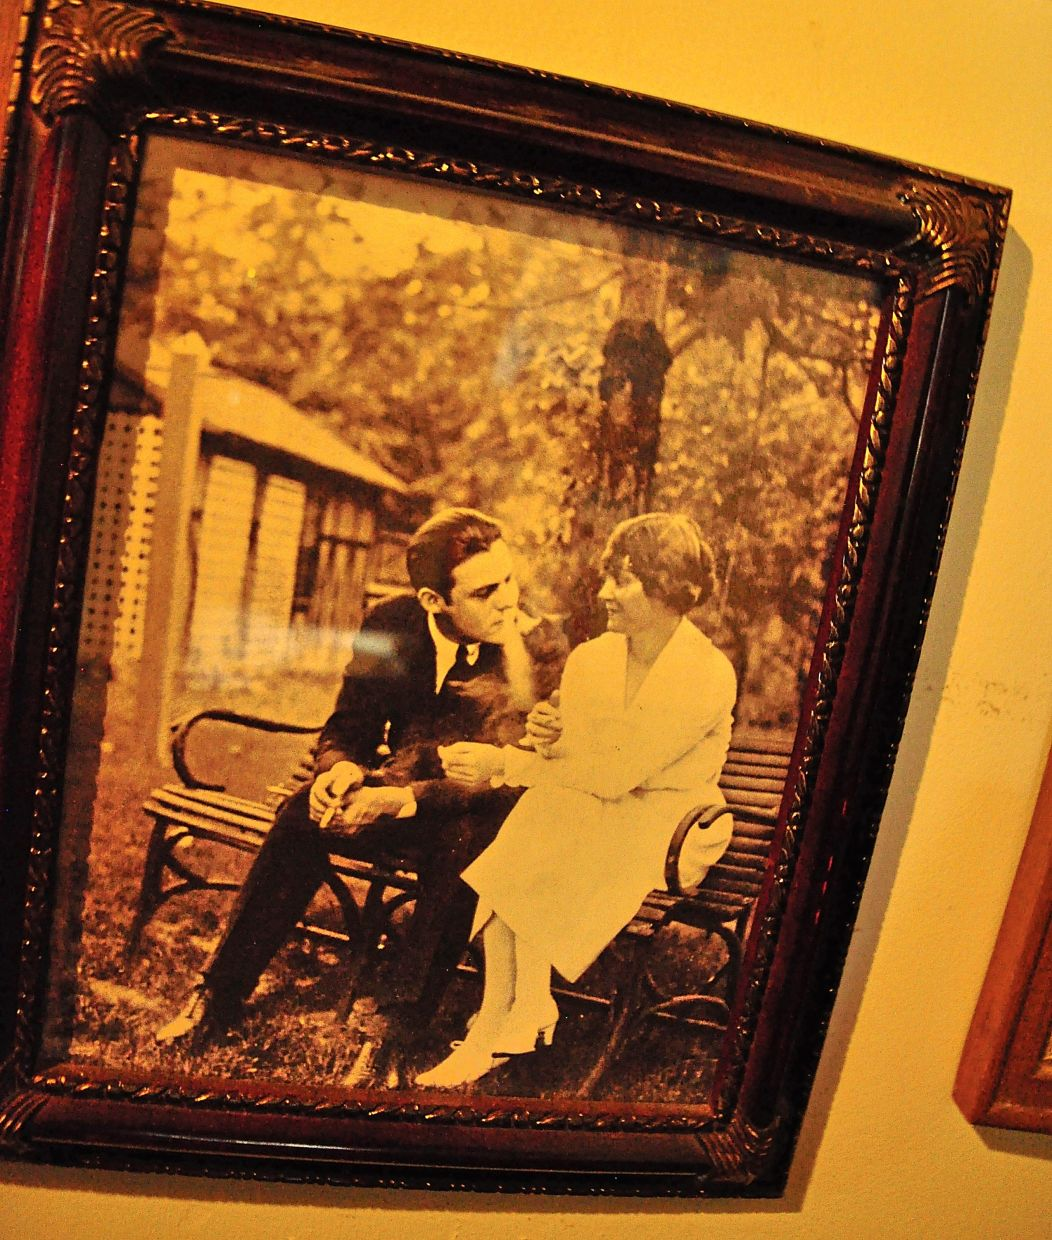 A photo of Hemingway and his first wife, Elizabeth, hanging in the Horton Bay General Store. They were married in a church next door in 1921.